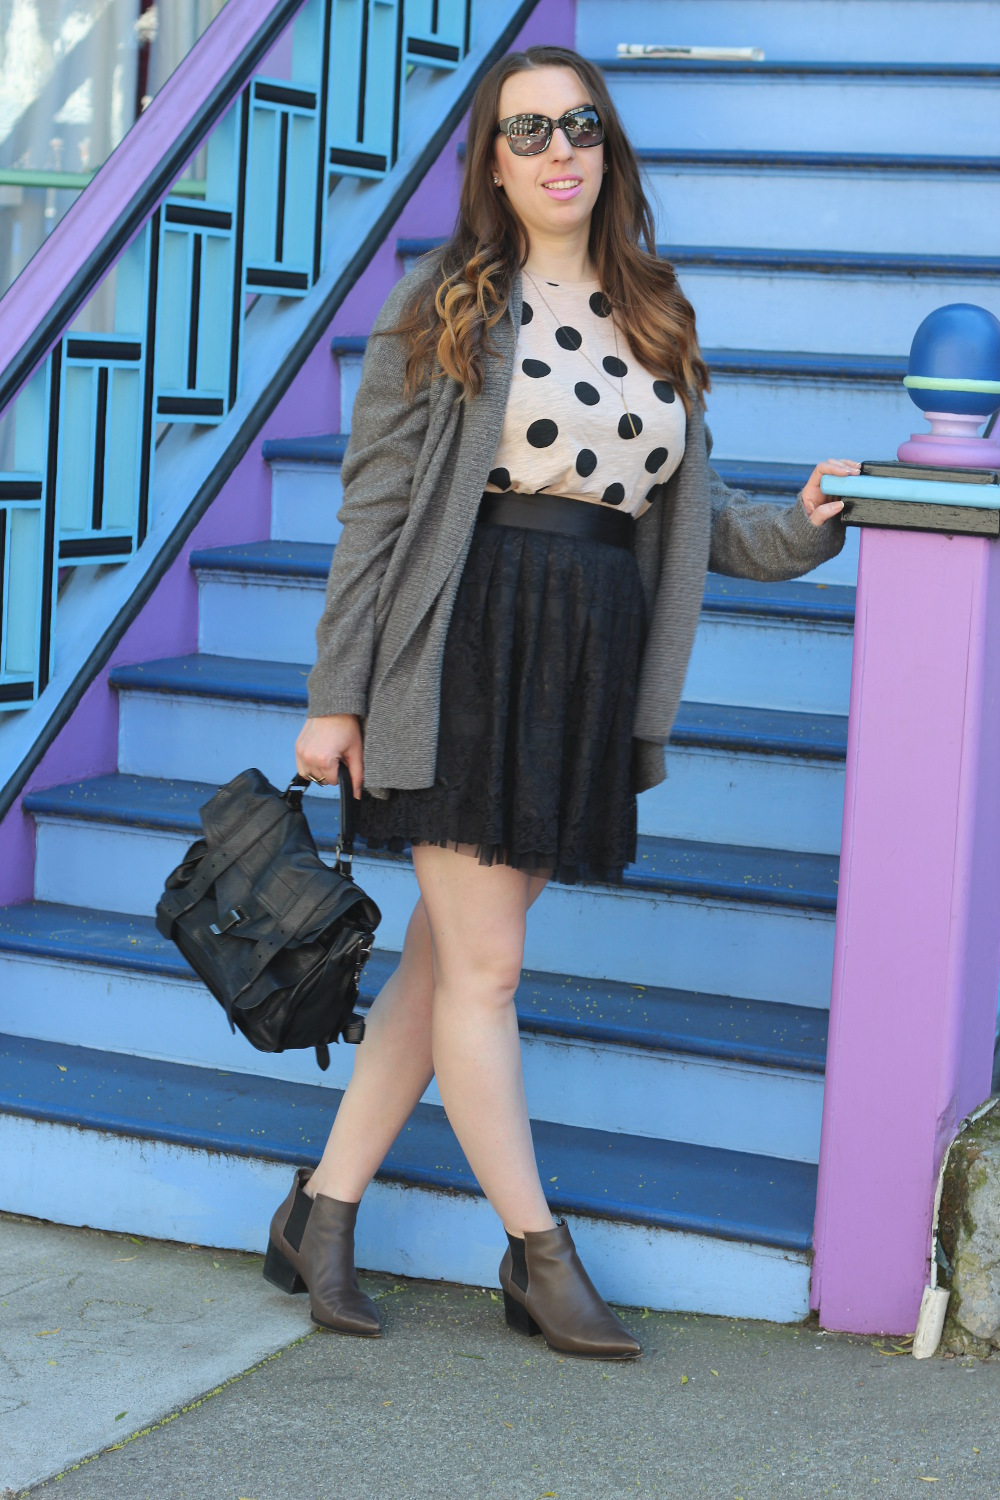 polka dots and lace